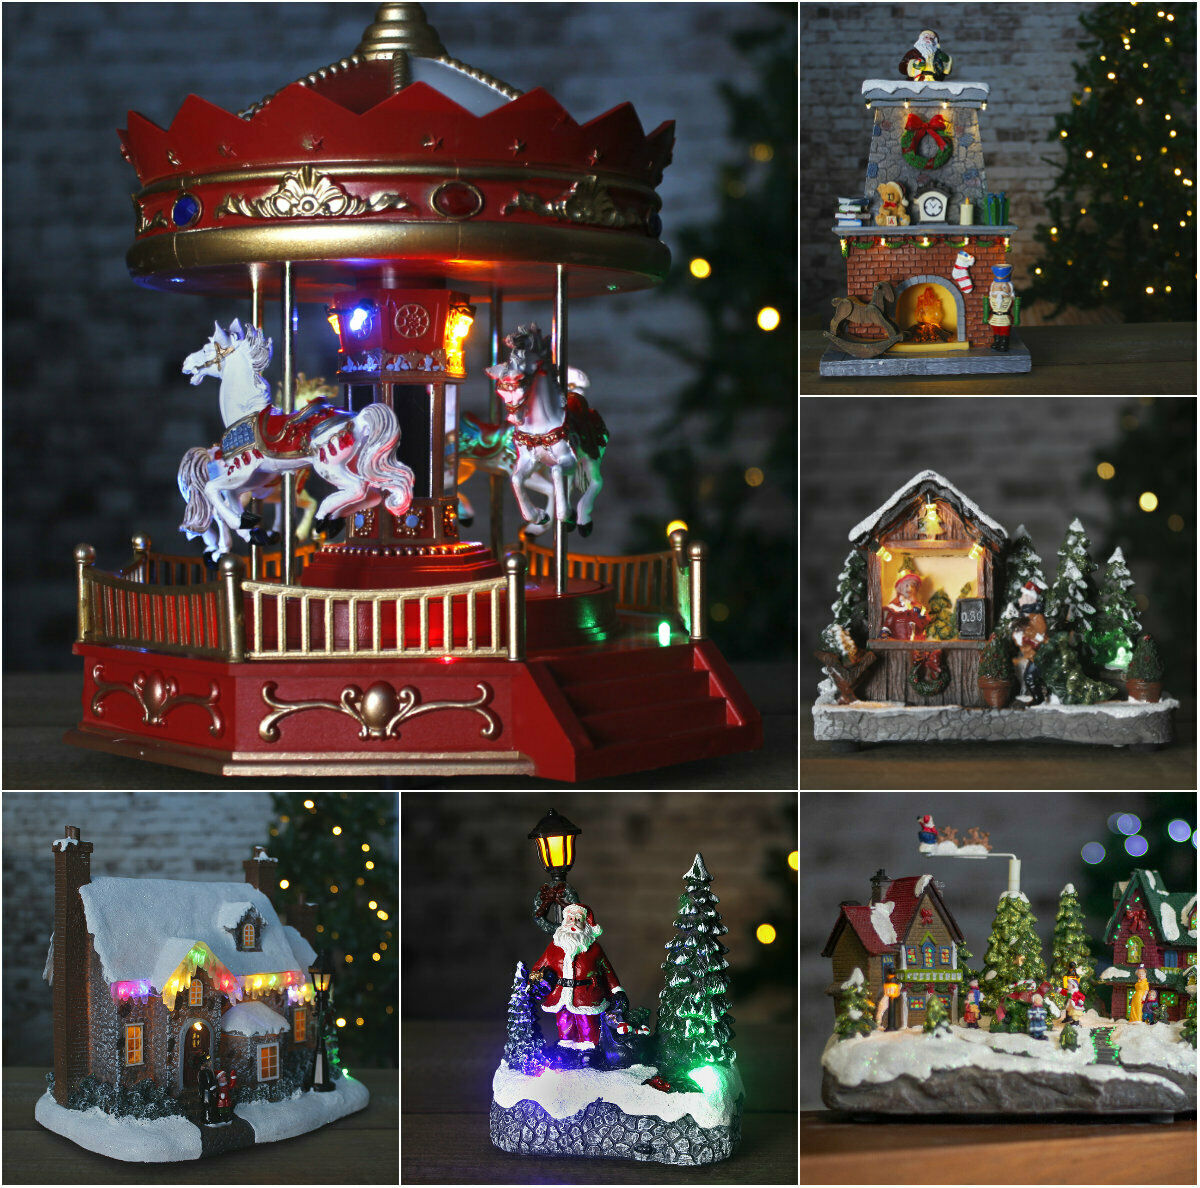 Christmas Musical Moving Led Mountain Village Snow Scene W Train Skaters Tree For Sale Ebay